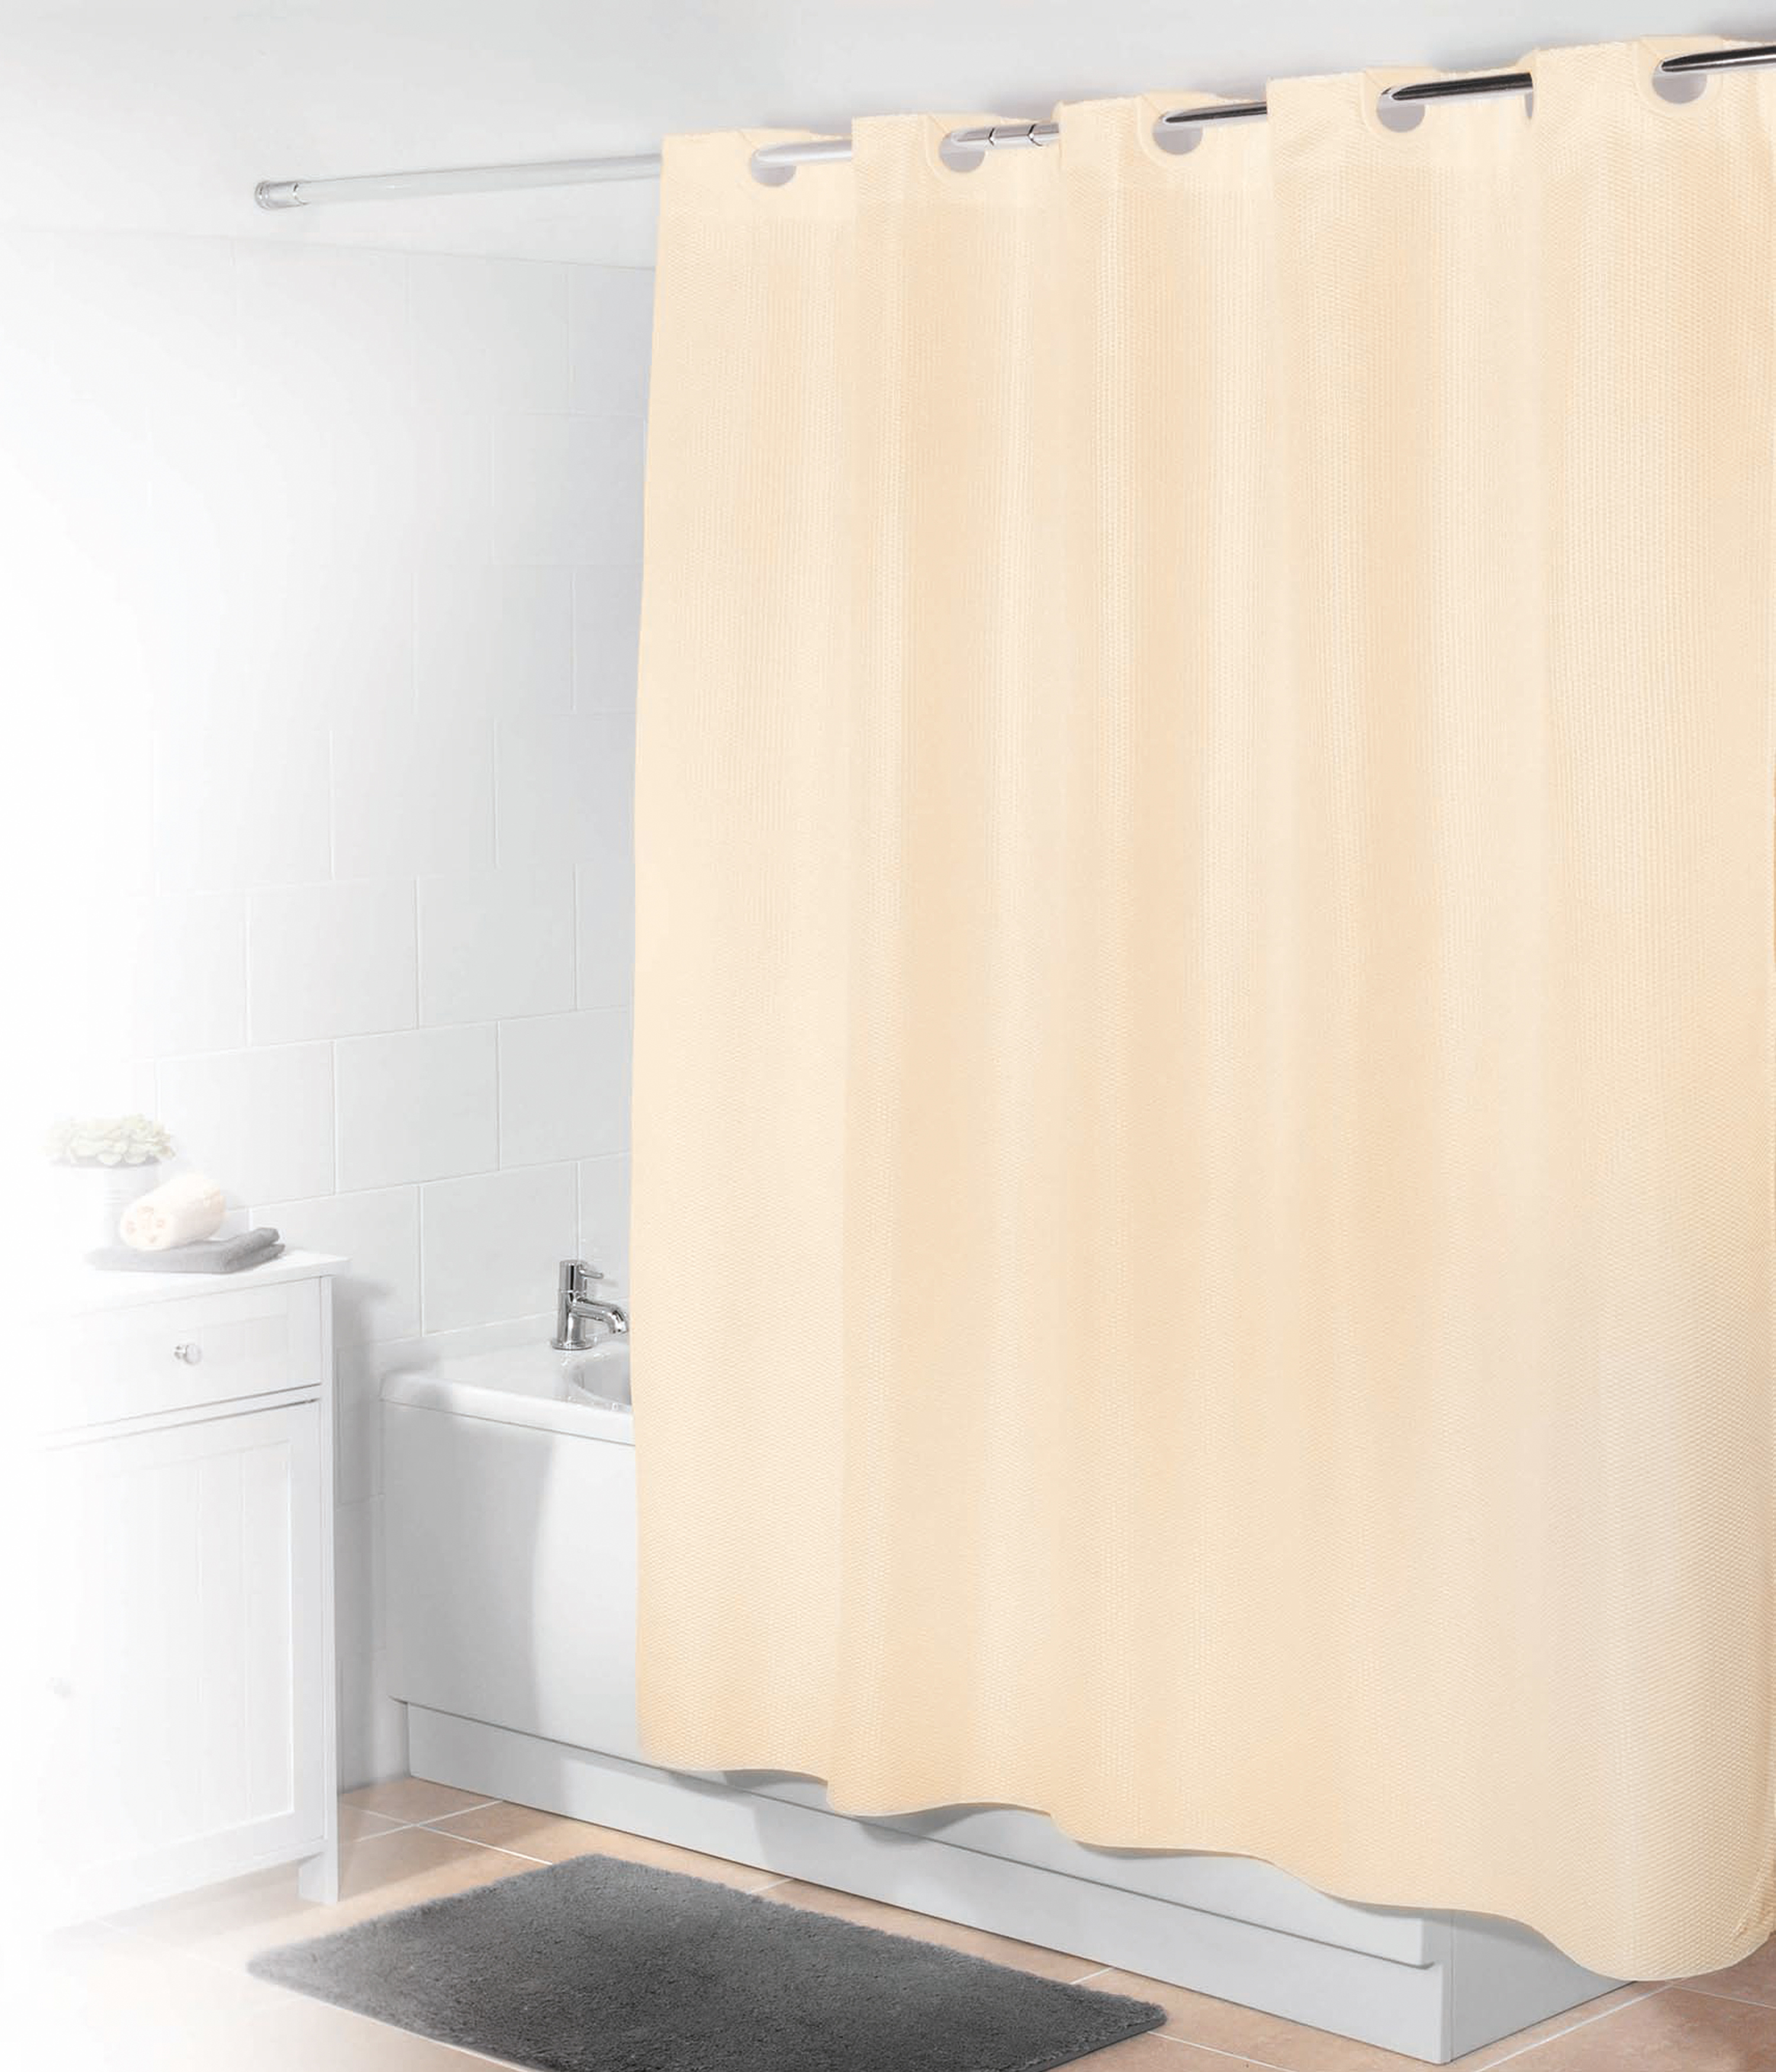 Beldray Waffle Hookless Shower Curtain, 180 x 180 cm, Cream | Beldray